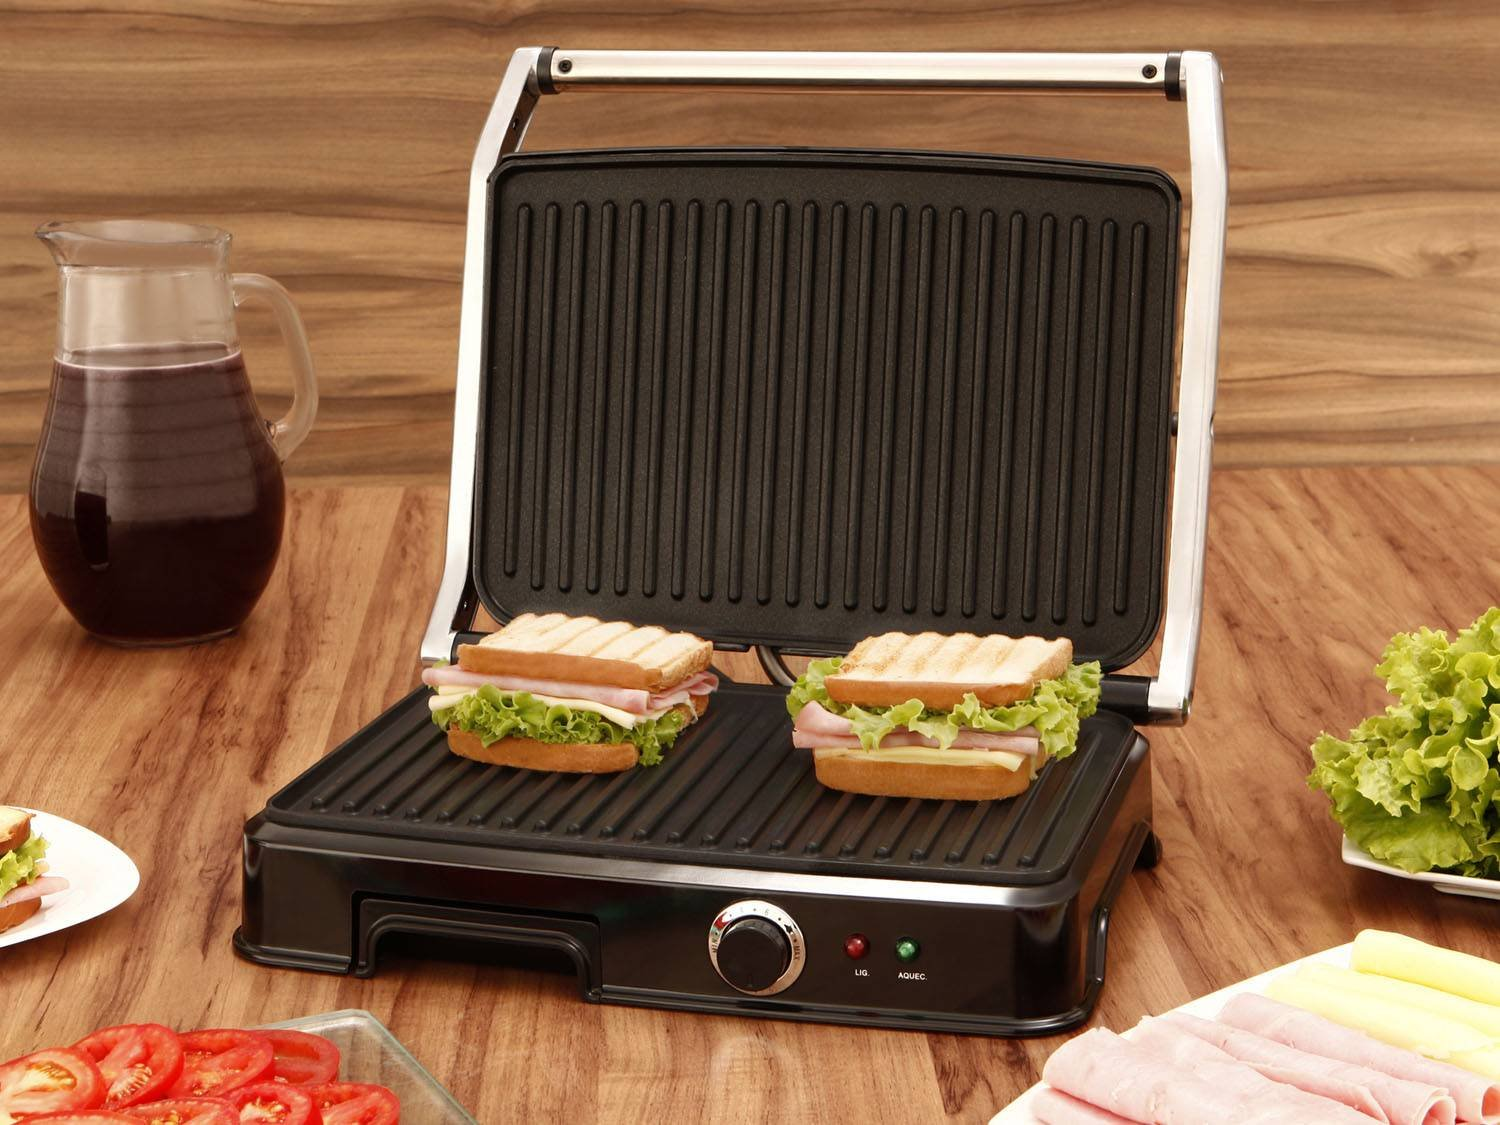 Grill 1830w com alça fria e chapa antiaderente philco super press